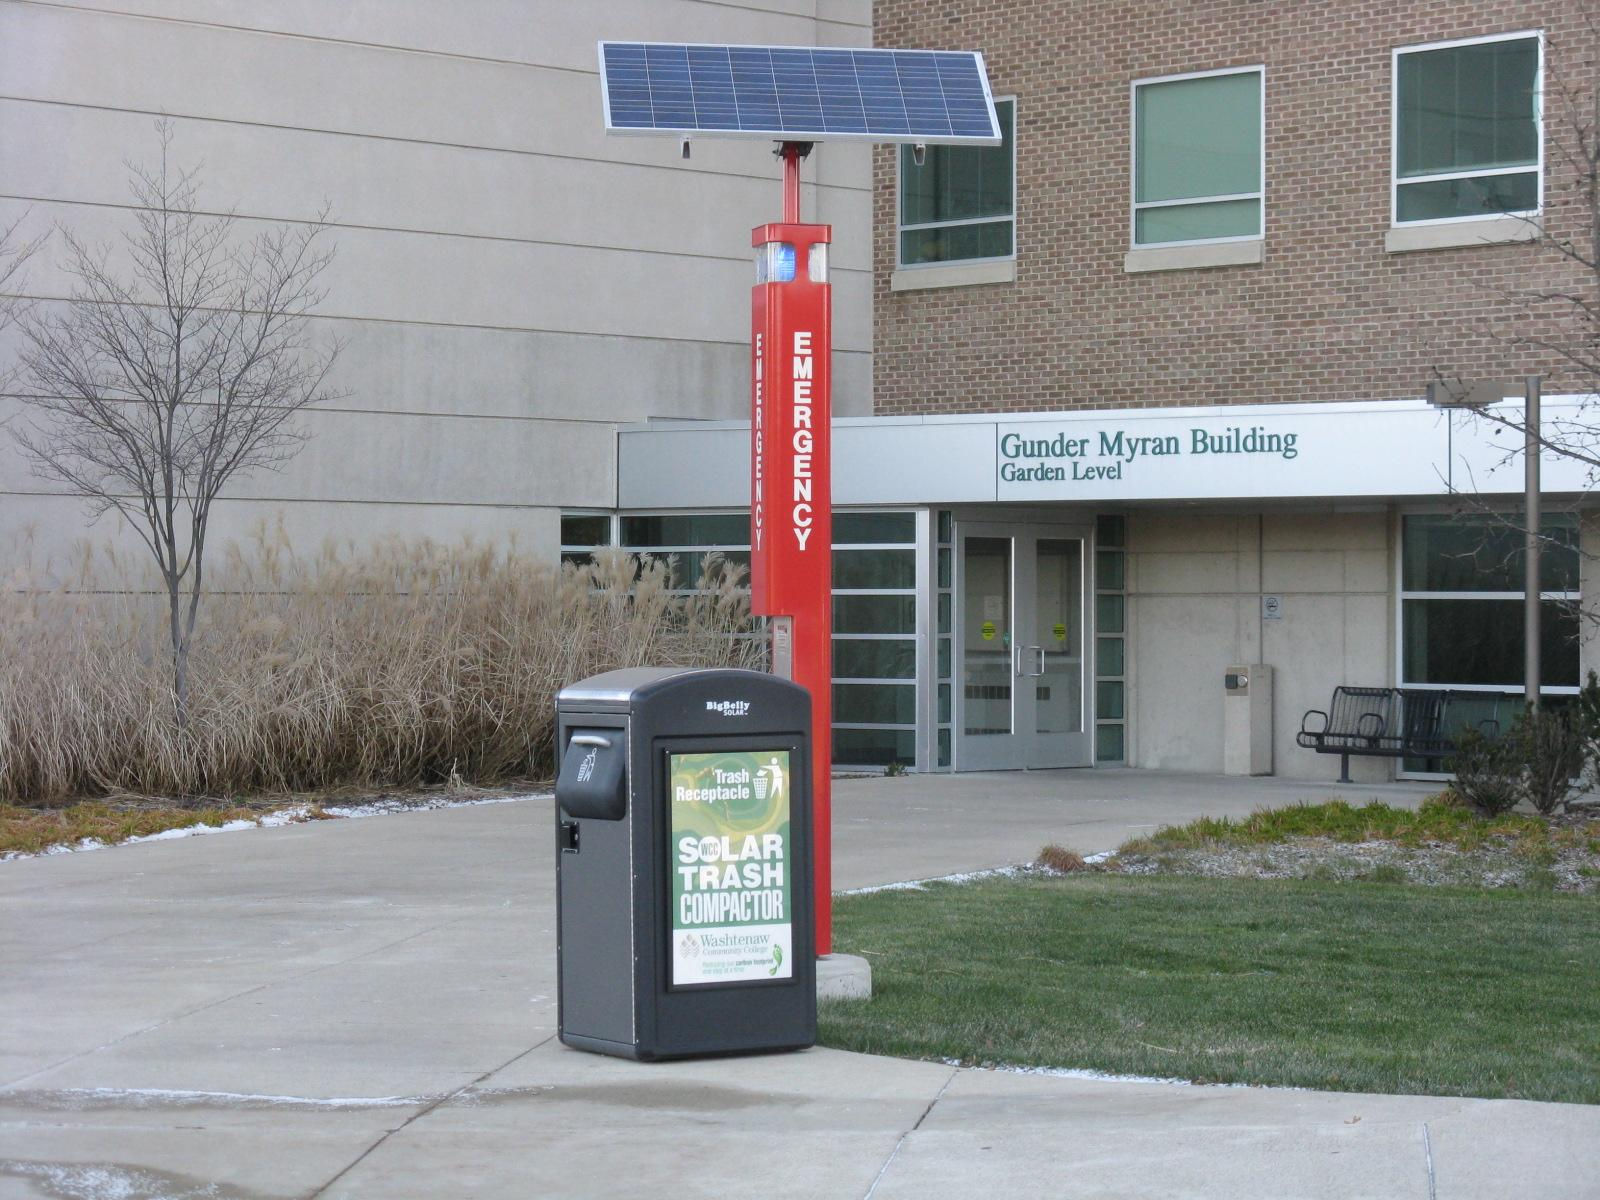 Solar powered emergency phone and trash compactor